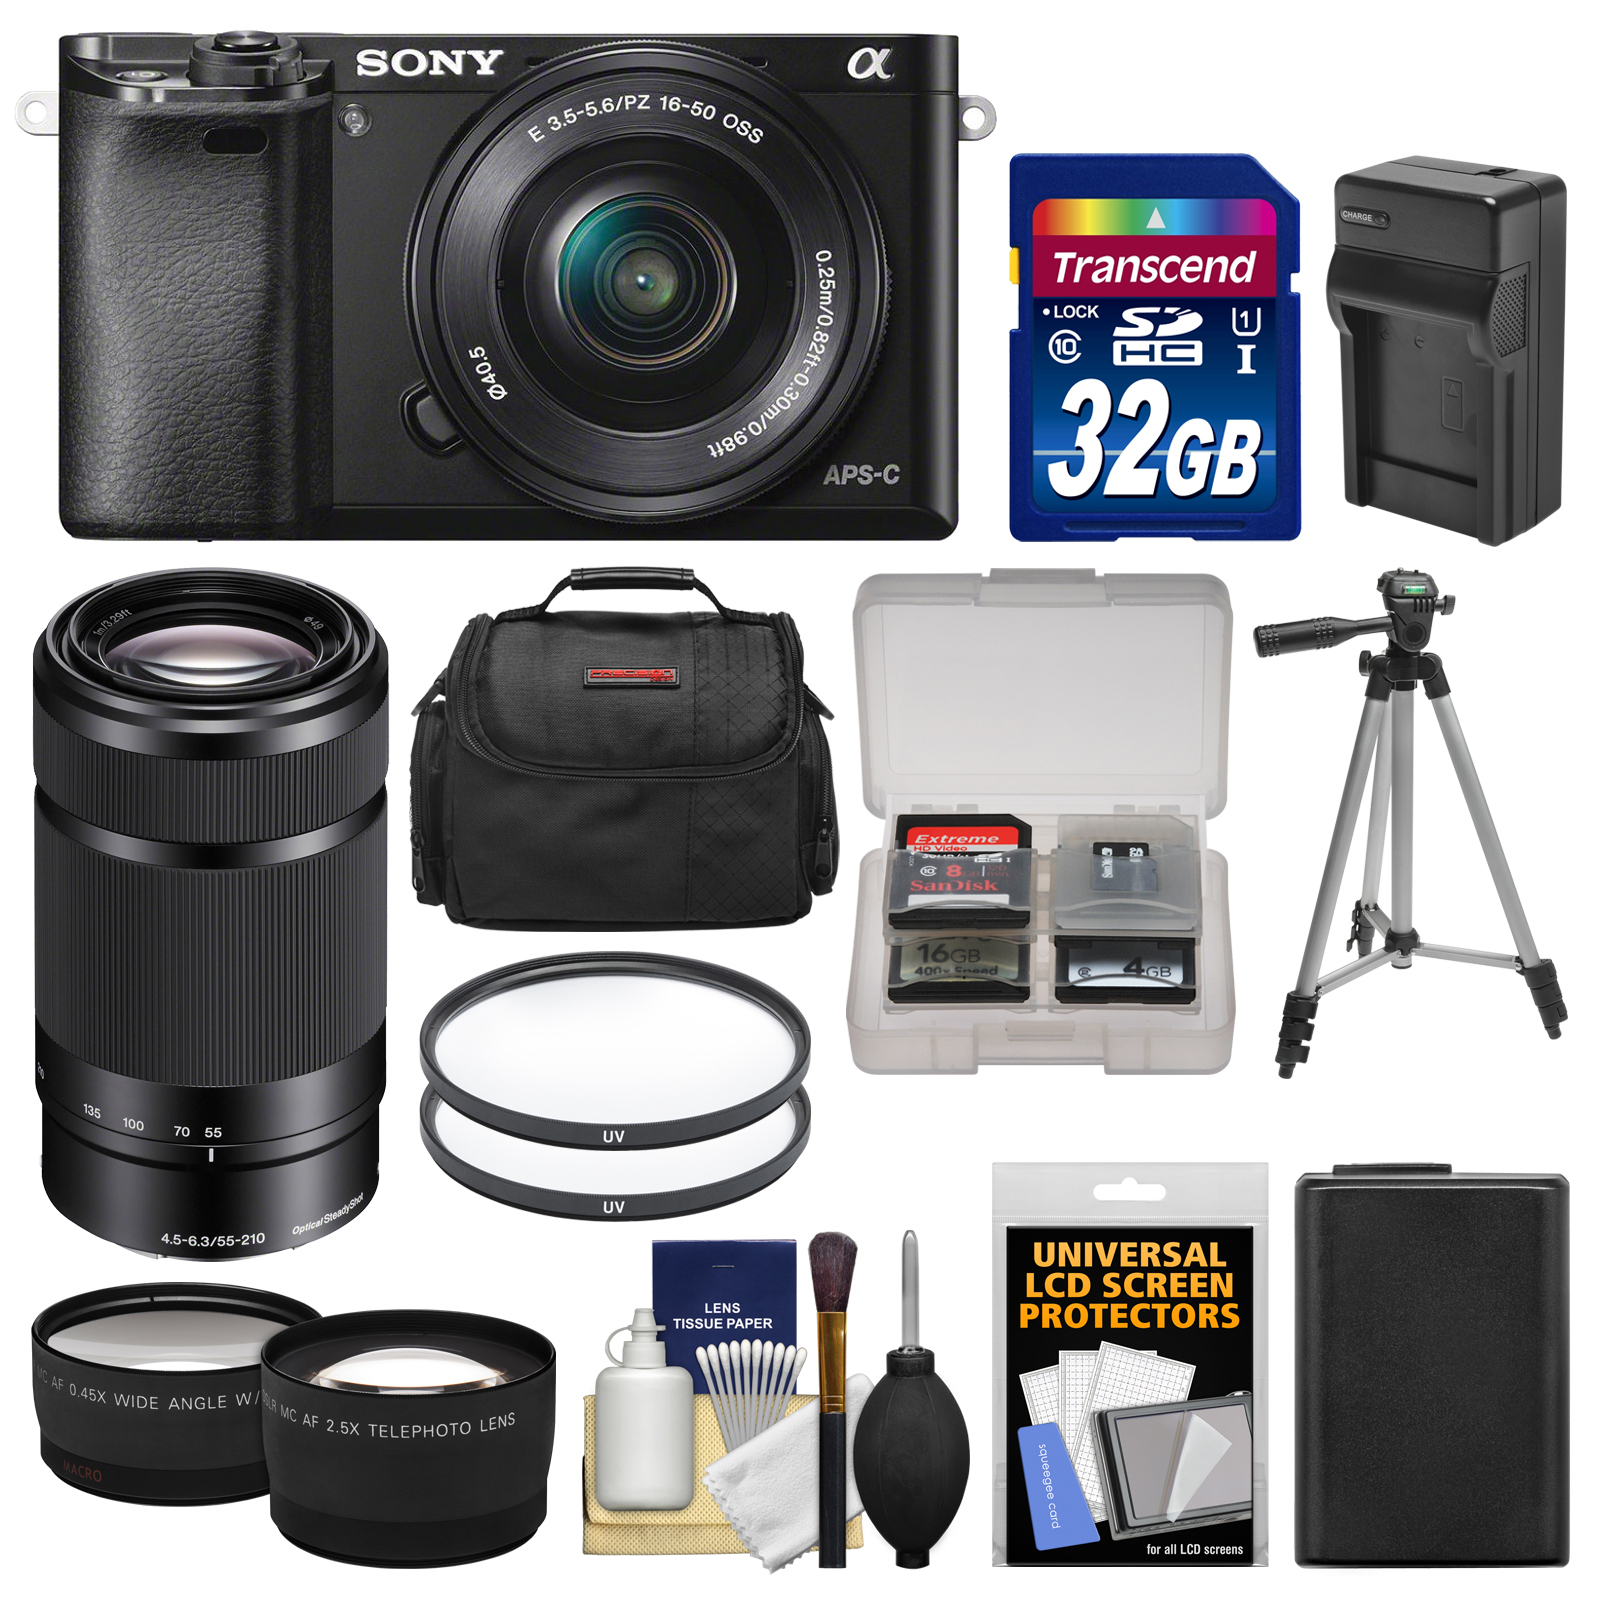 Sony Alpha A6000 Wi-Fi Digital Camera & 16-50mm & 55-210mm Lens with 32GB Card   Case   Battery/Charger   Tripod   Tele/Wide Lens Kit